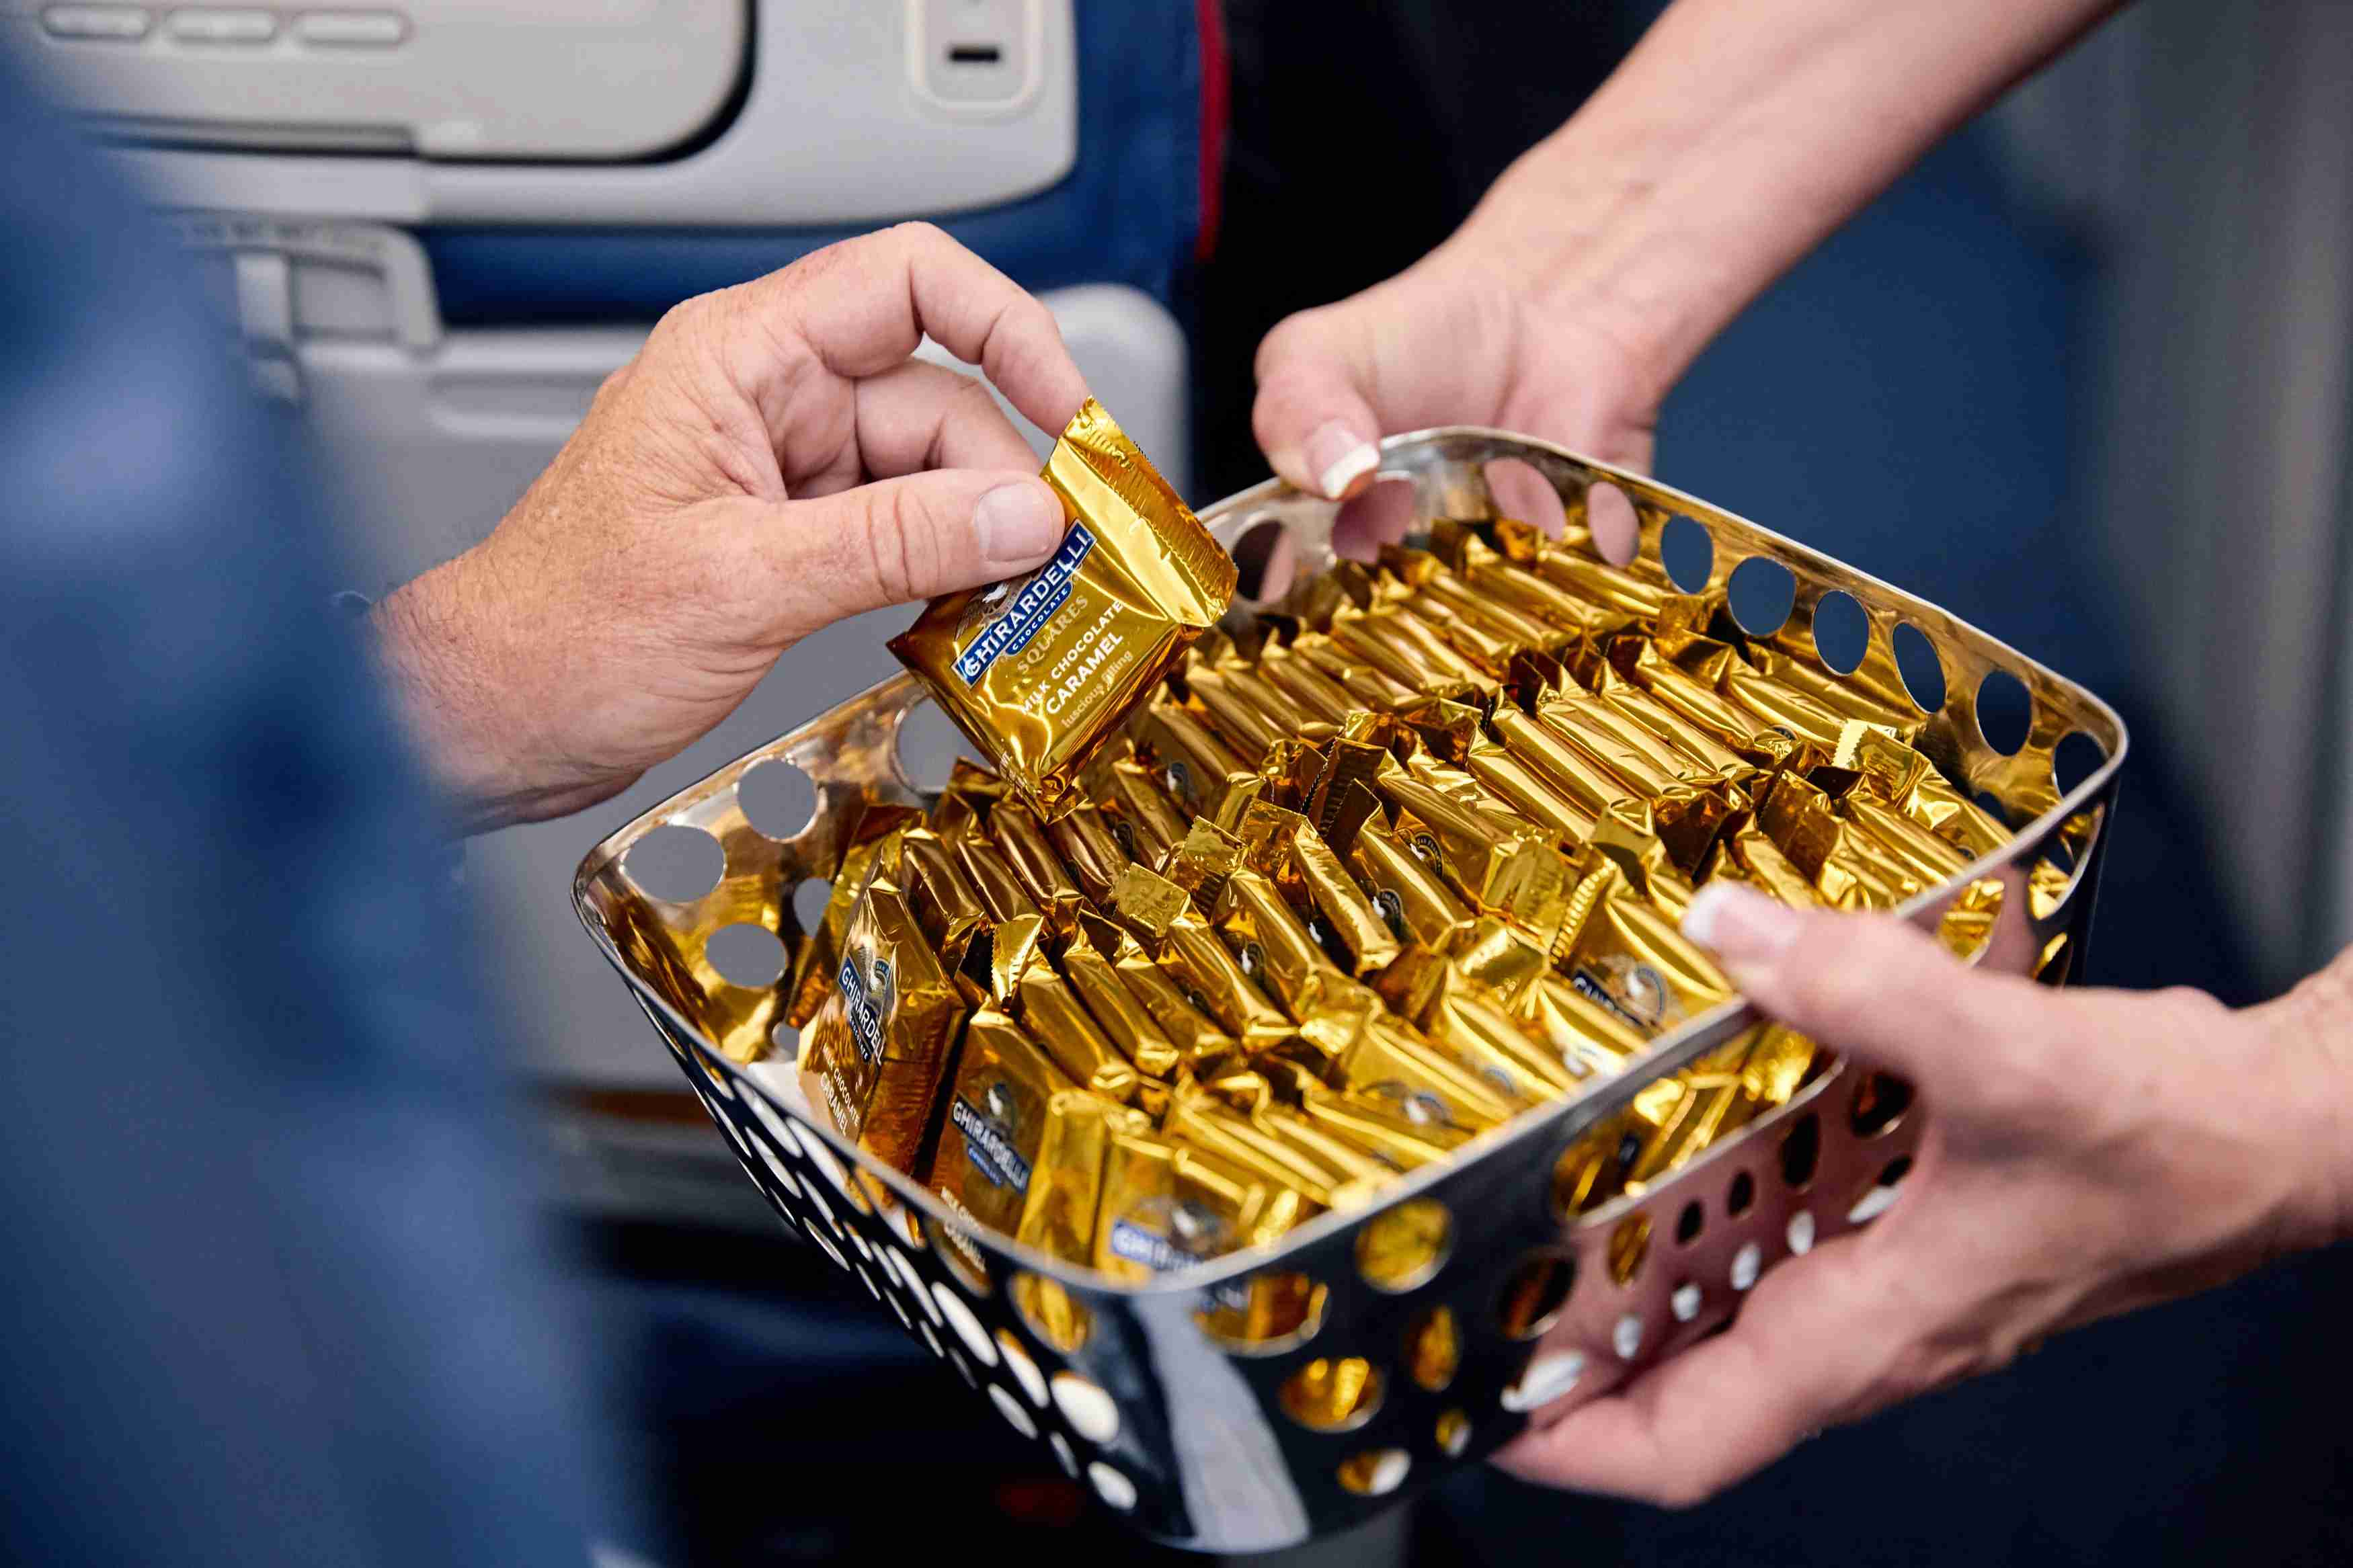 Chocolates will be handed out in the economy cabin prior to landing (Photo courtesy of Delta Air Lines)